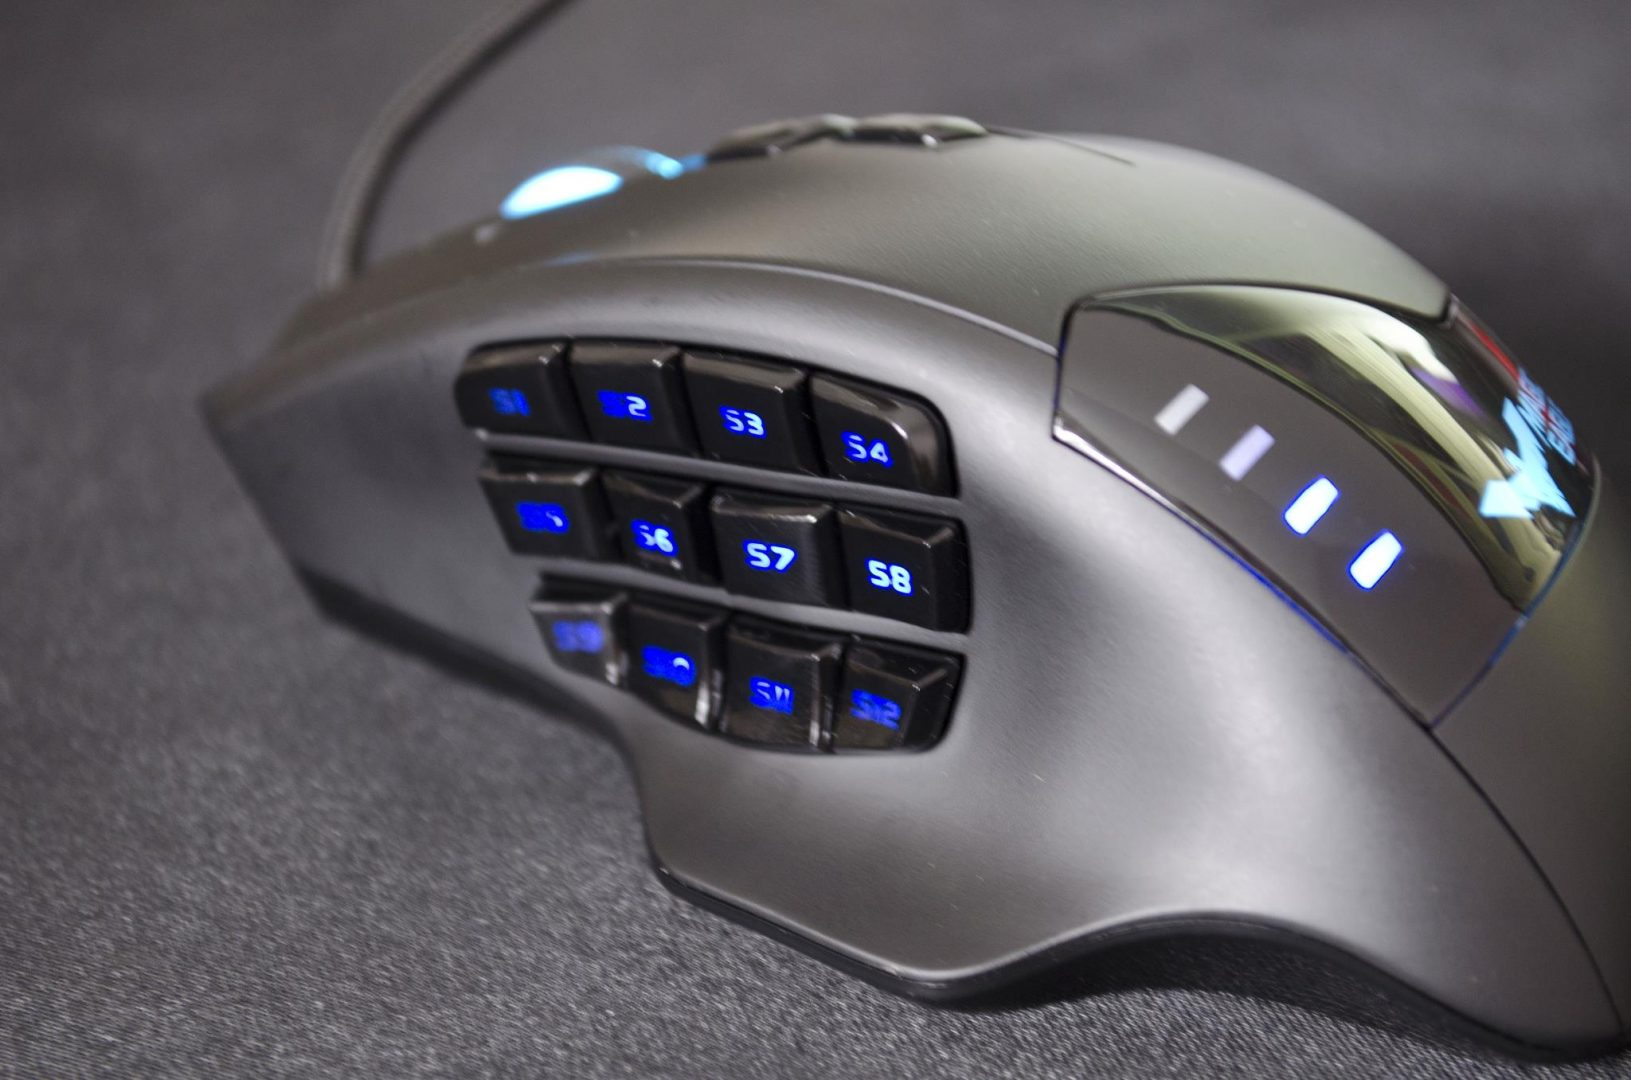 havit-hv-ms735-mouse-review_11